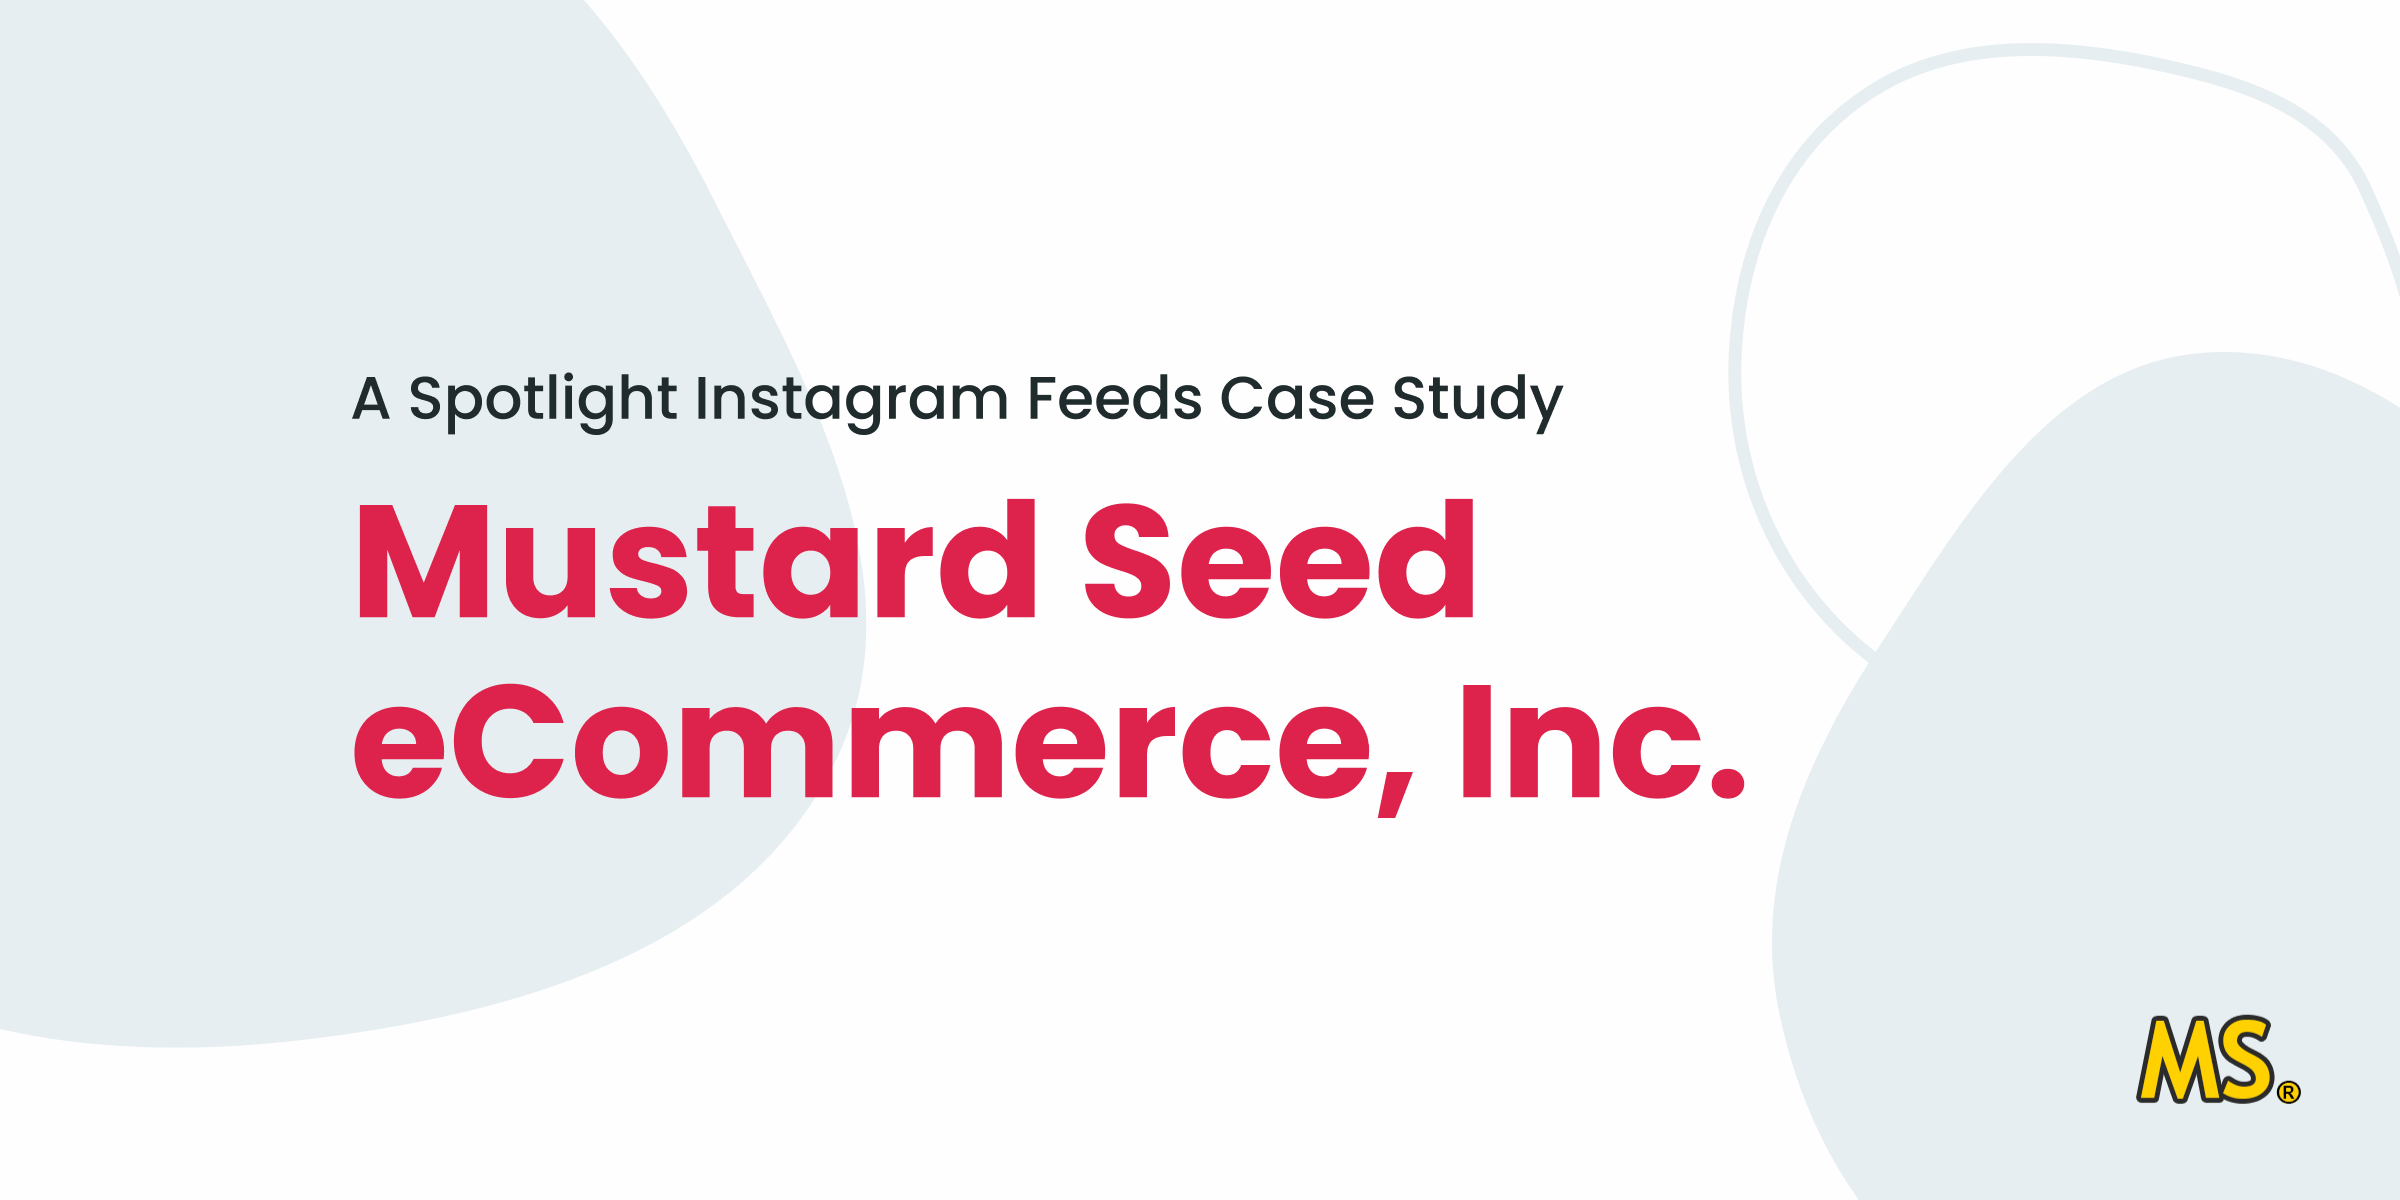 Spotlight Instagram Feeds Case Study - Mustard Seed eCommerce, Inc.